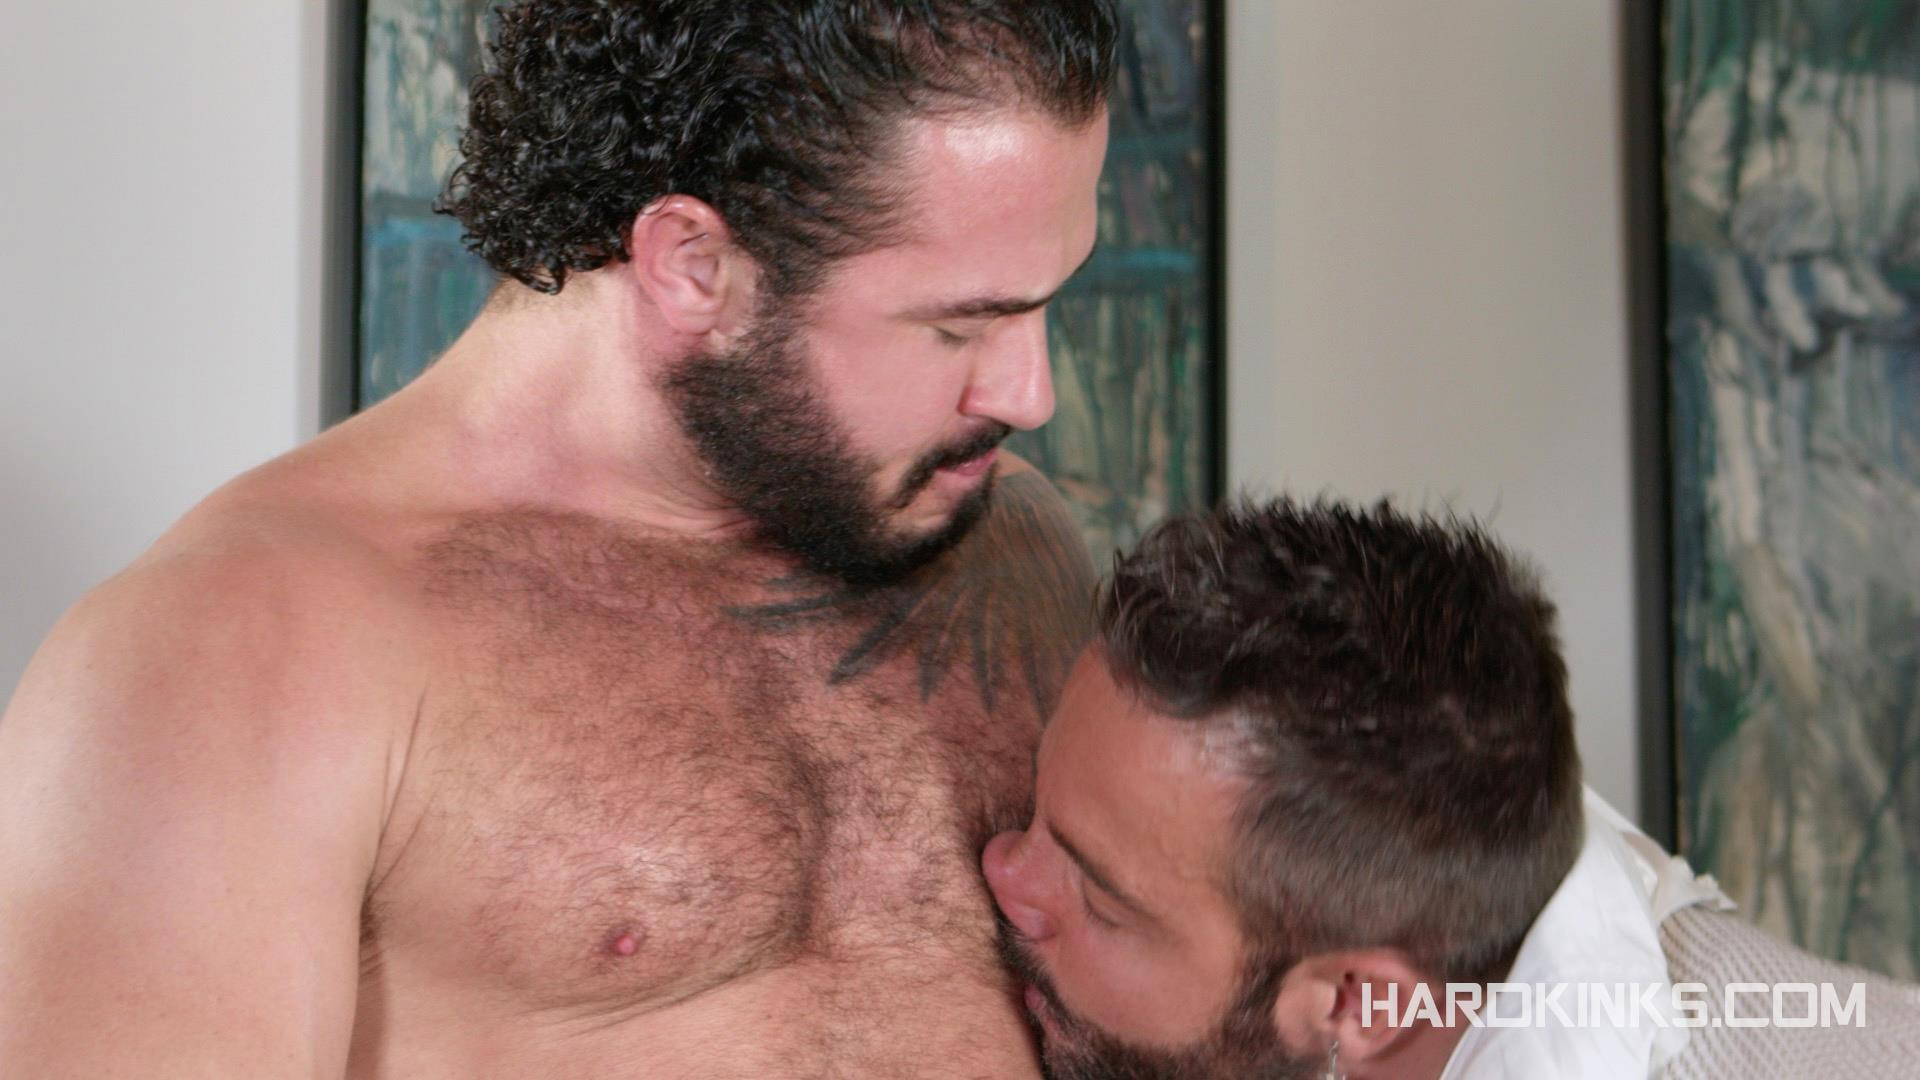 Hardkinks-Jessy-Ares-and-Martin-Mazza-Hairy-Alpha-Male-Amateur-Gay-Porn-06 Hairy Muscle Alpha Male Dominates His Coworker